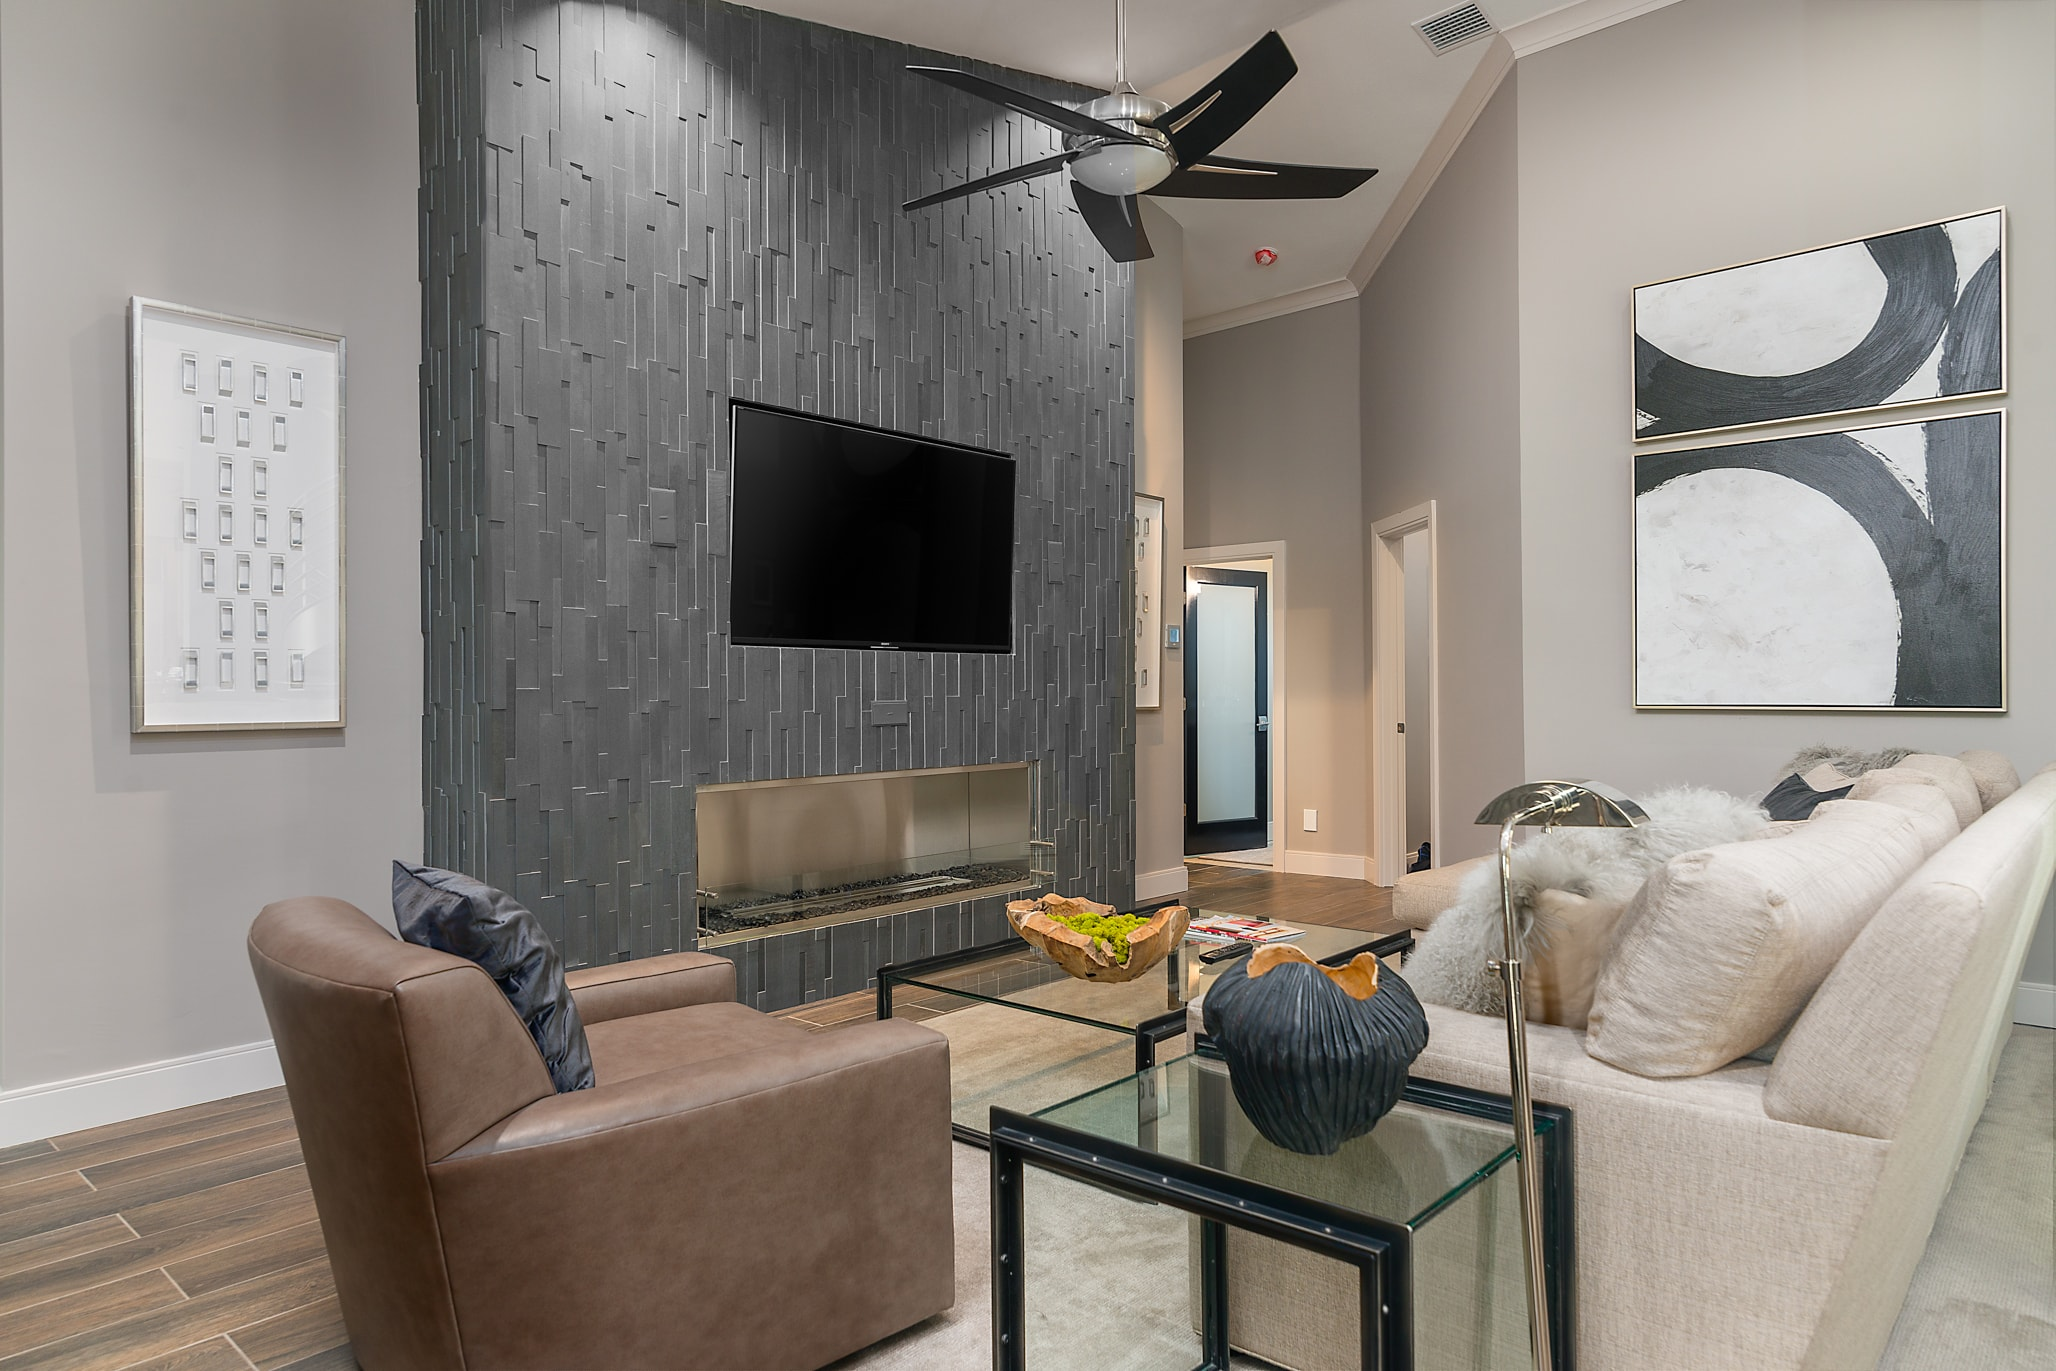 Project profile review of a fireplace project in Tampa, FL that used Norstone Basalt Grey Aksent 3D stone veneer panels on a modern styled fireplace